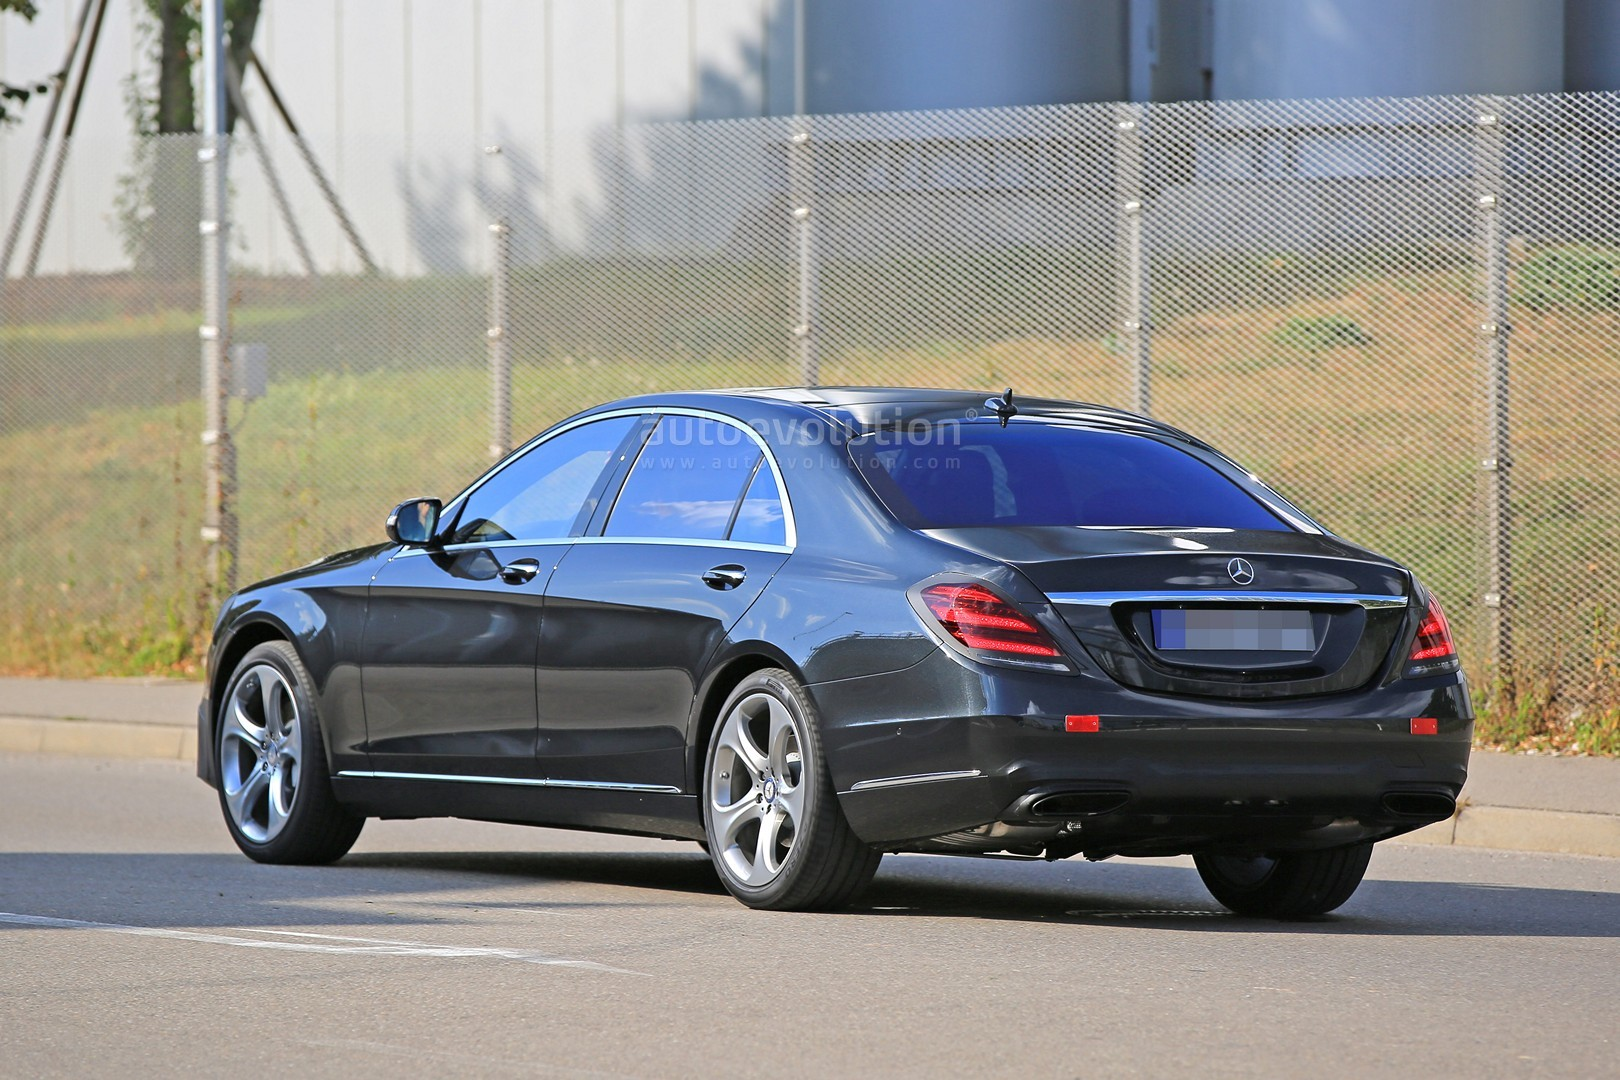 2018 Mercedes S-Class Taillights Spied in Detail ...